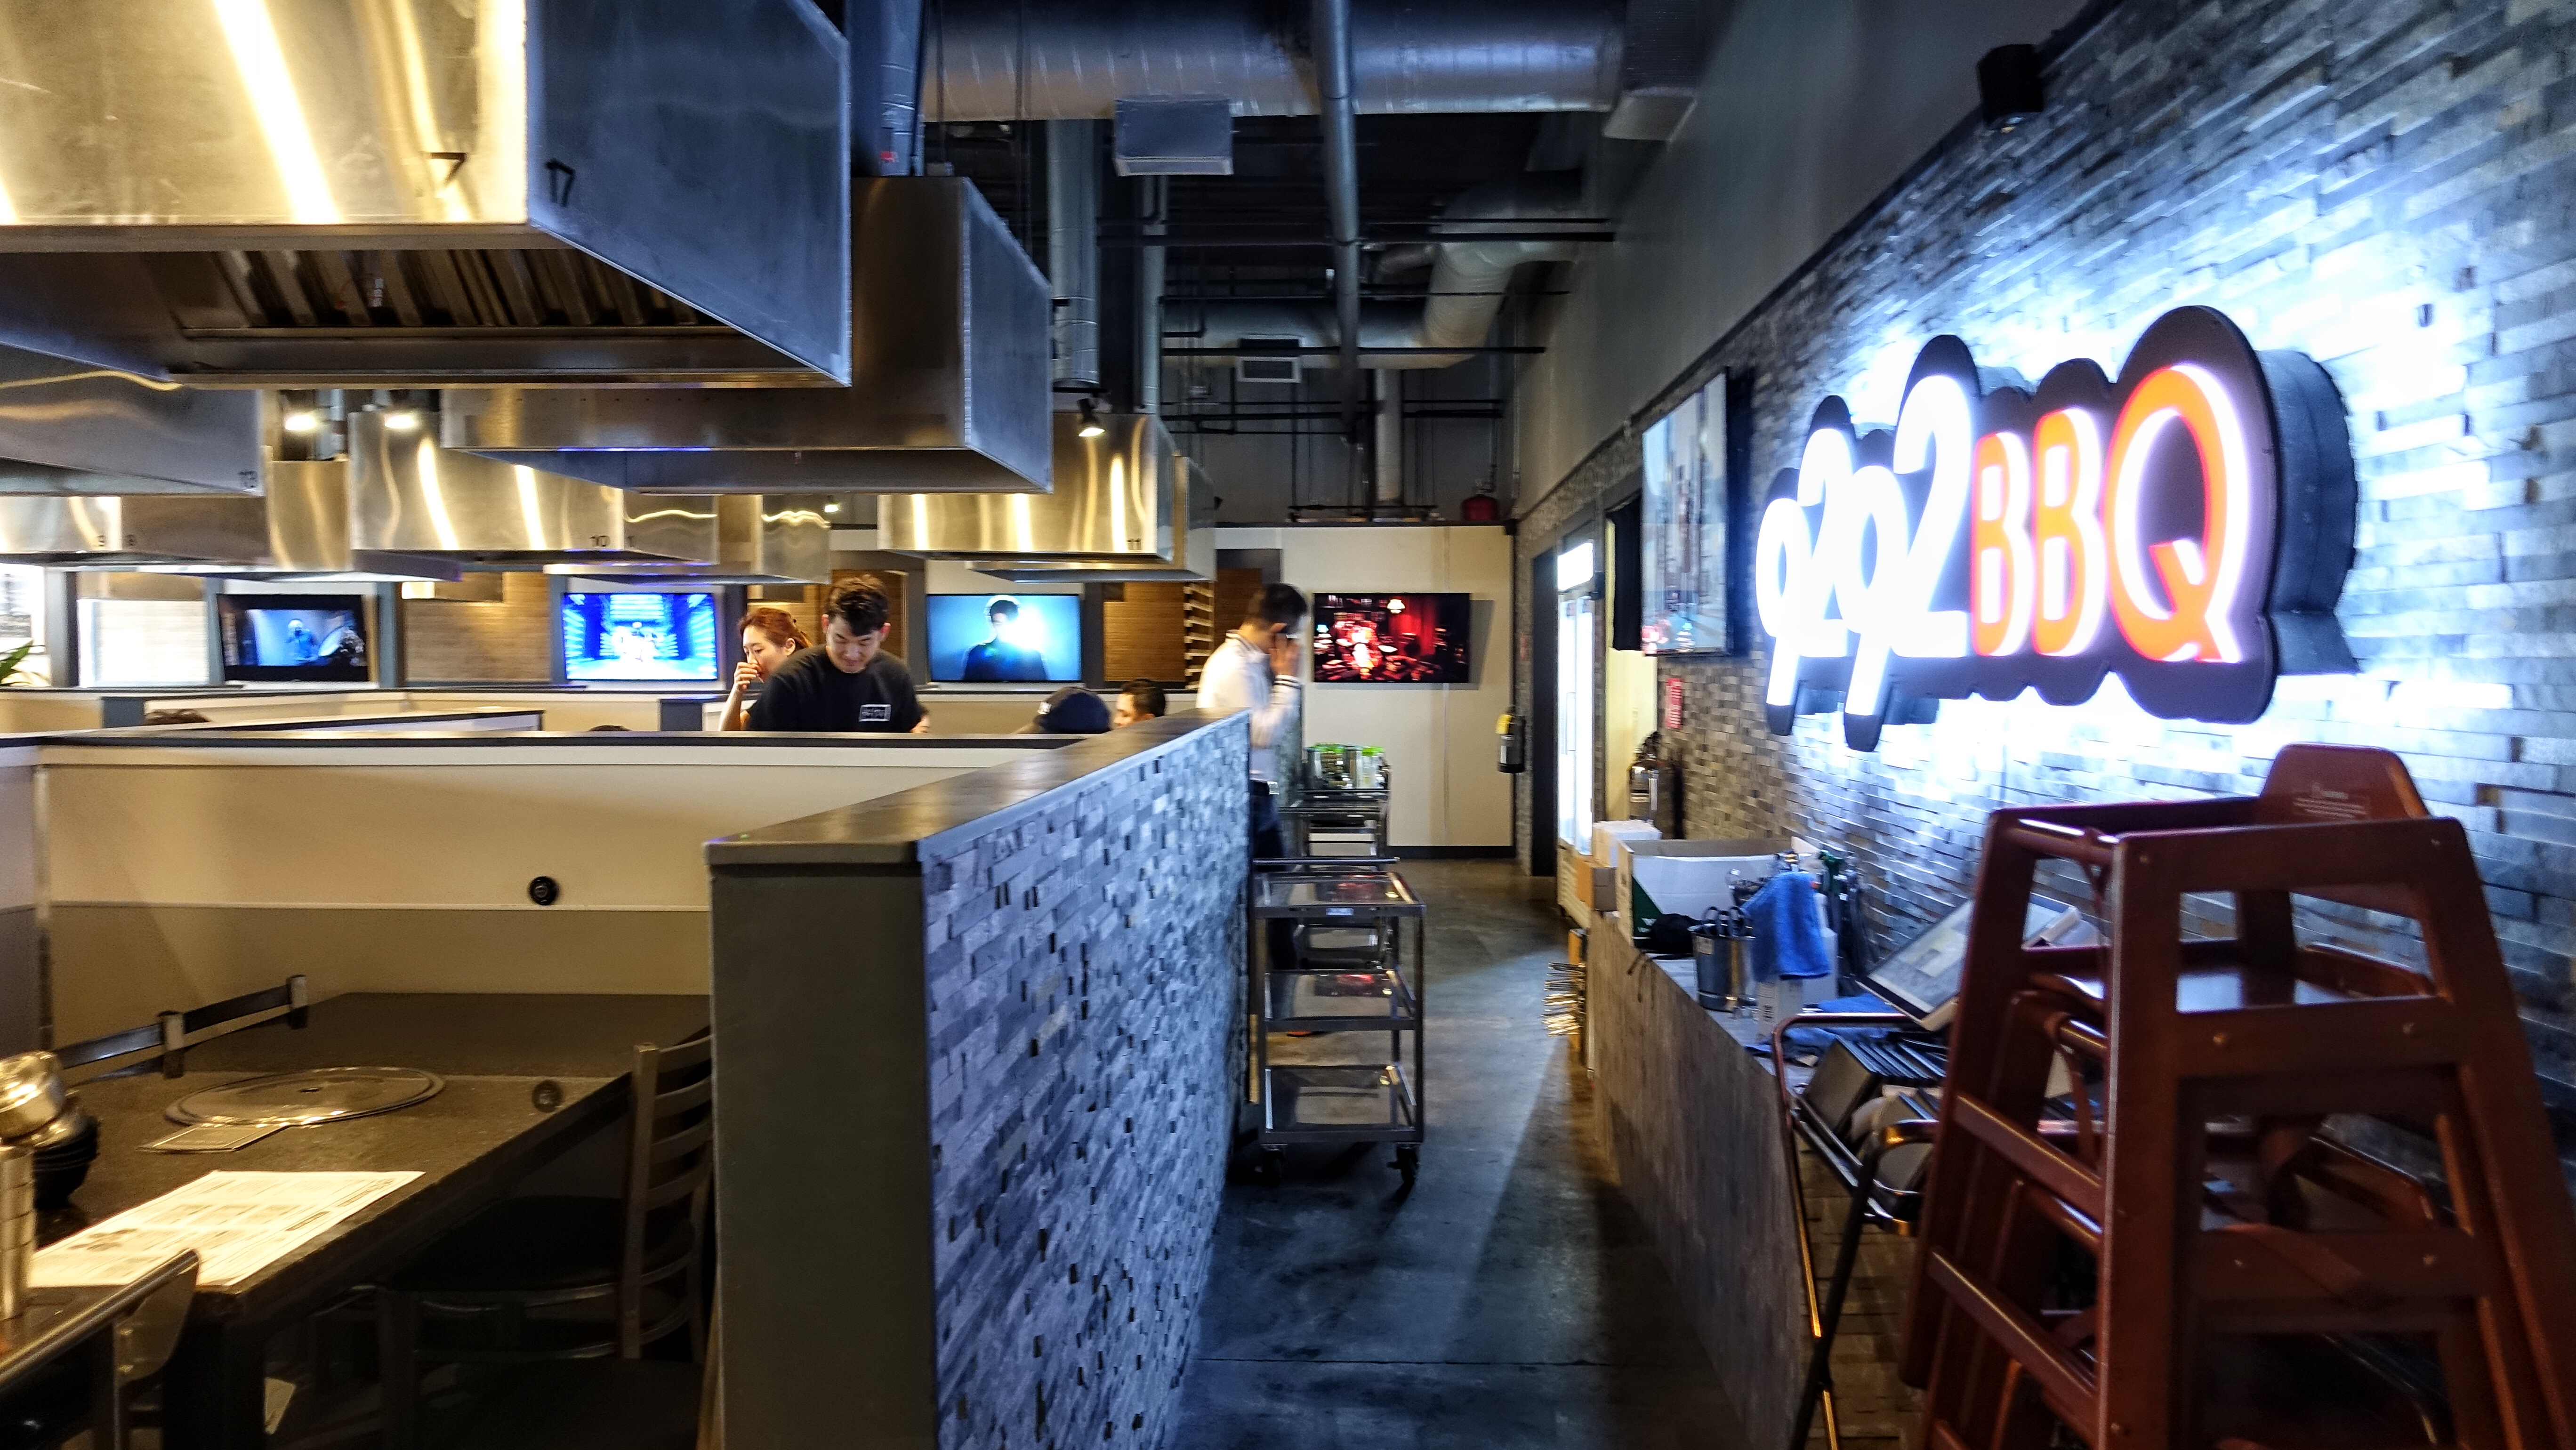 9292 Korean Bbq Changes The Kbbq Game In Duluth Atlanta